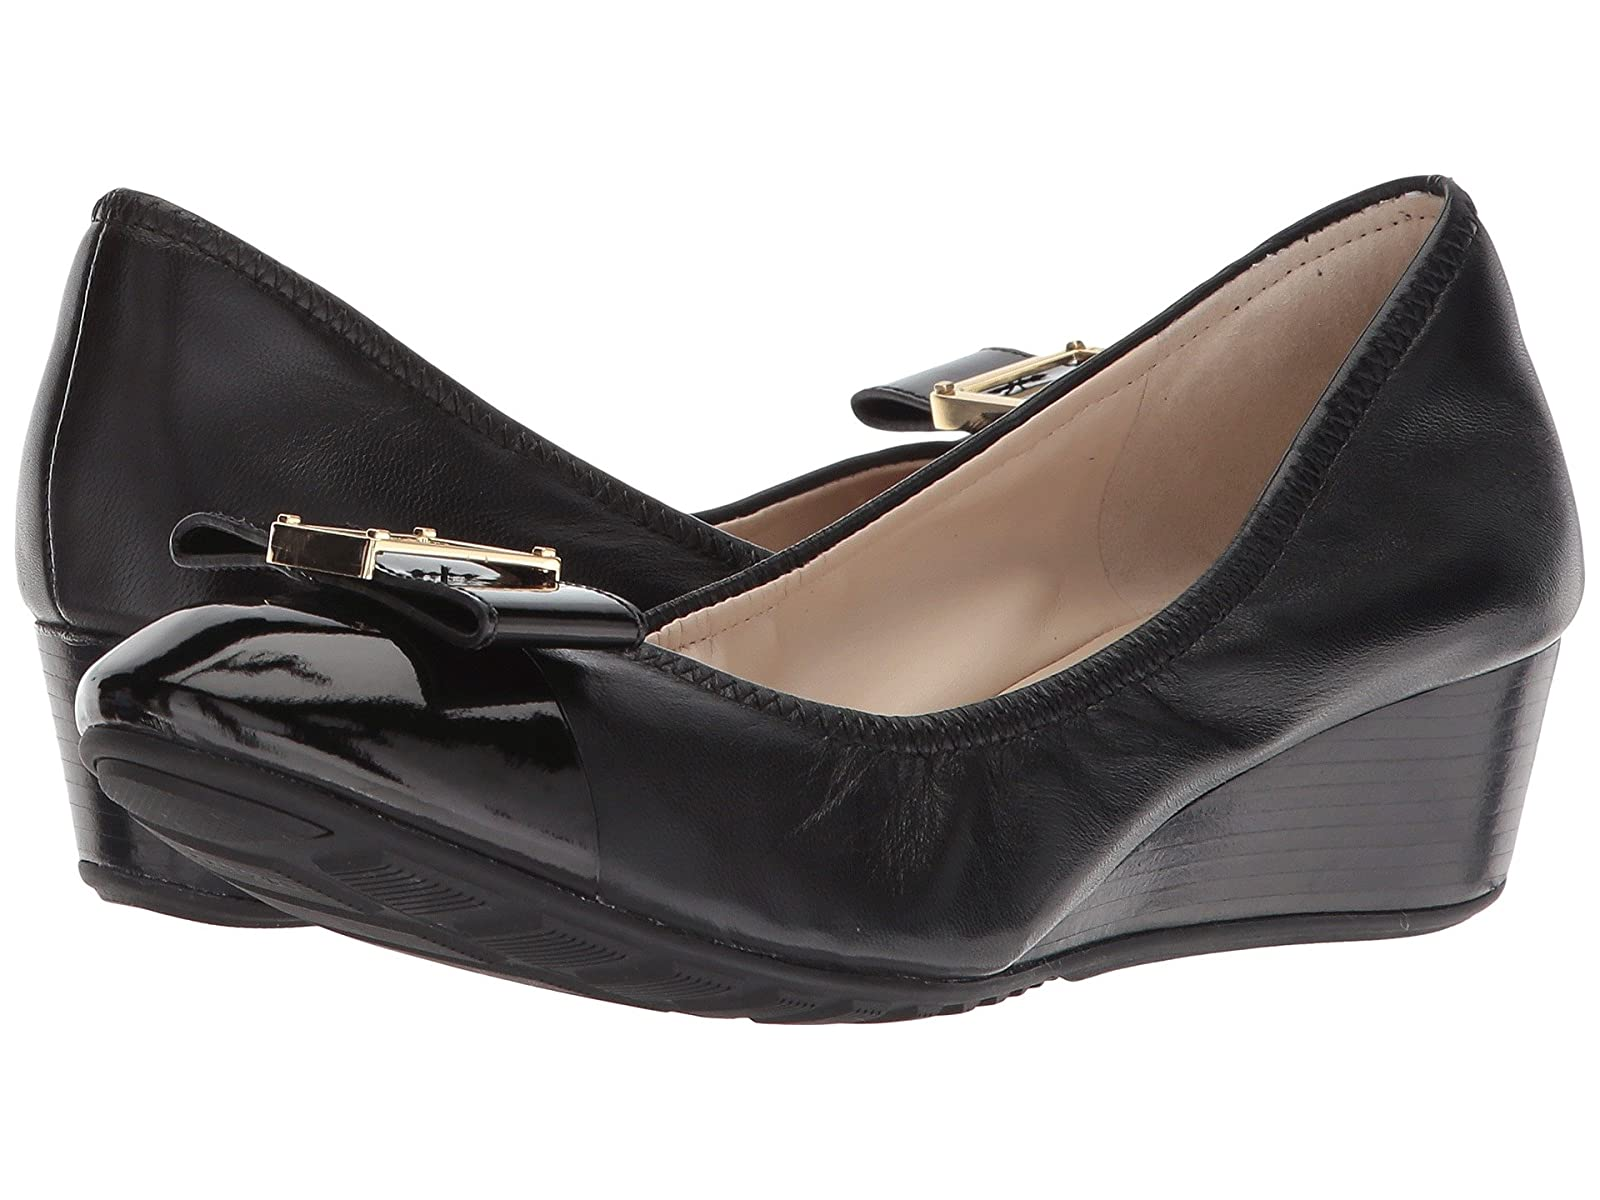 Cole Haan Emory 40mm Bow Wedge IICheap and distinctive eye-catching shoes